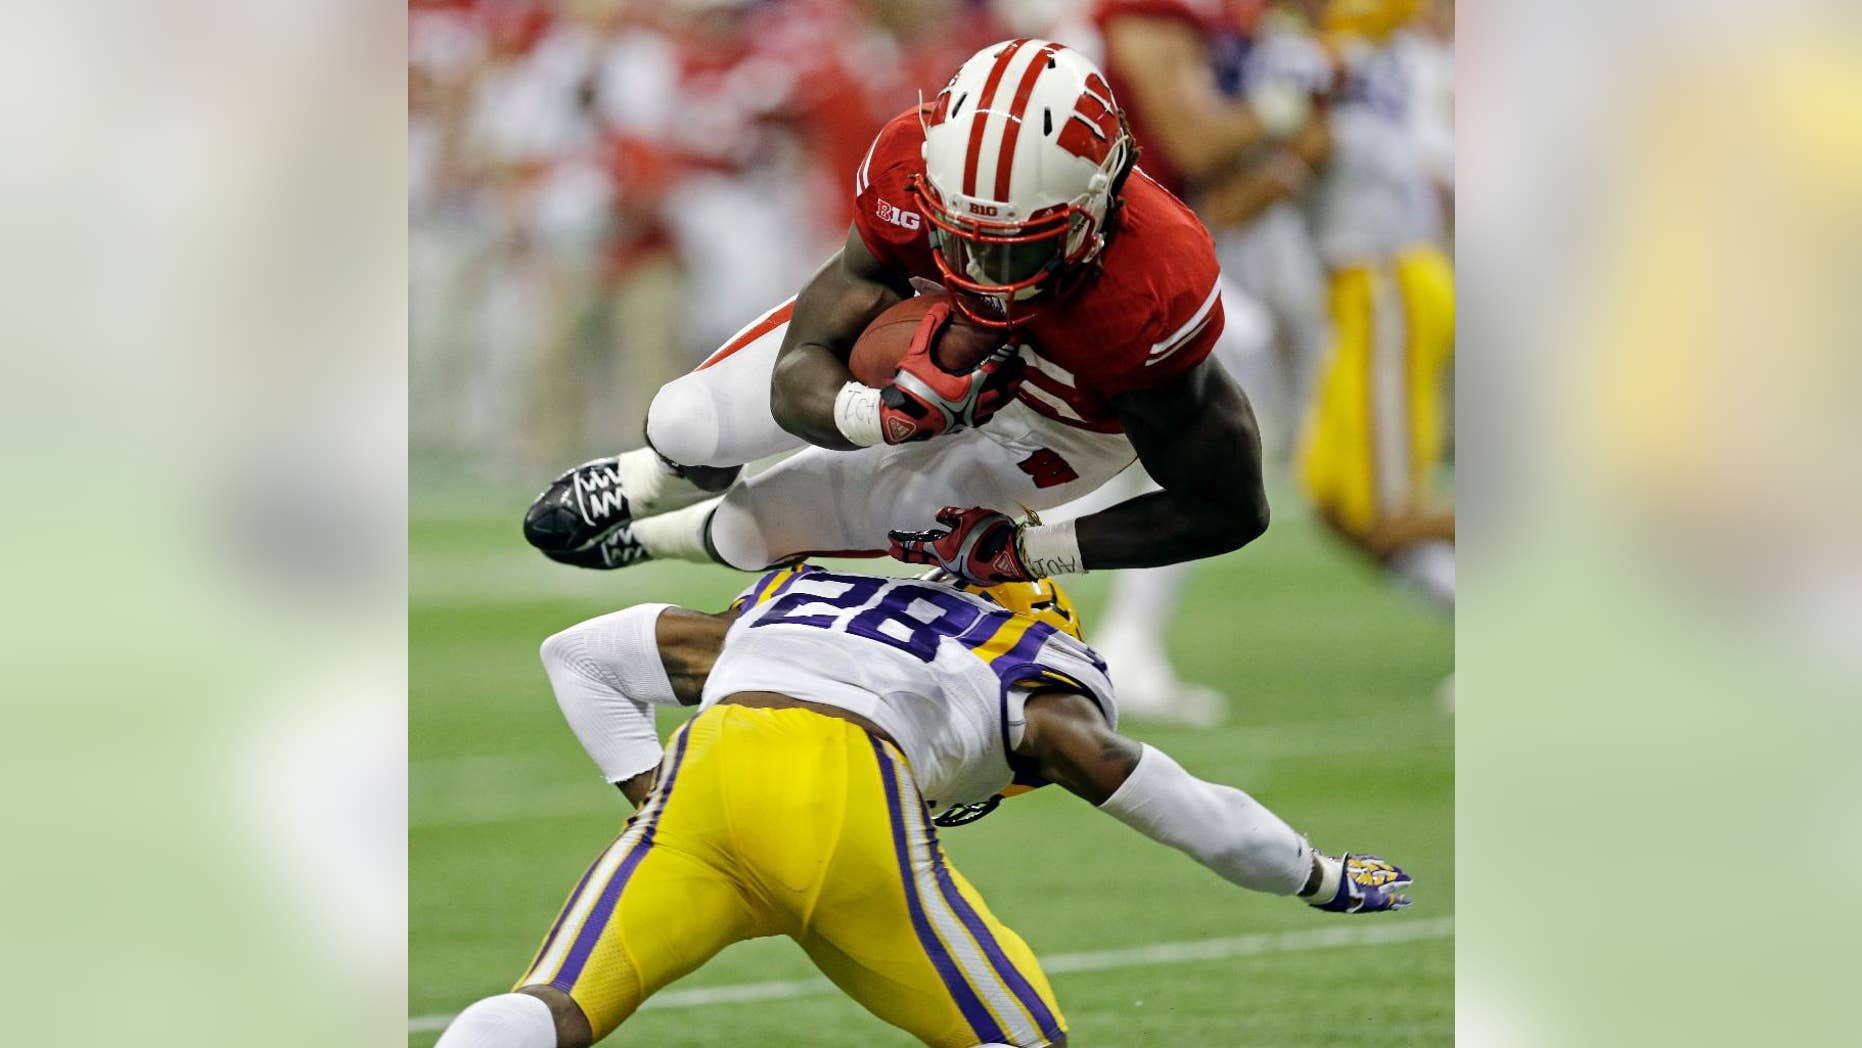 Wisconsin's Melvin Gordon leaps over LSU safety Jalen Mills (28) for a 14-yard touchdown run during the first half of an NCAA college football game Saturday, Aug. 30, 2014, in Houston. (AP Photo/David J. Phillip)